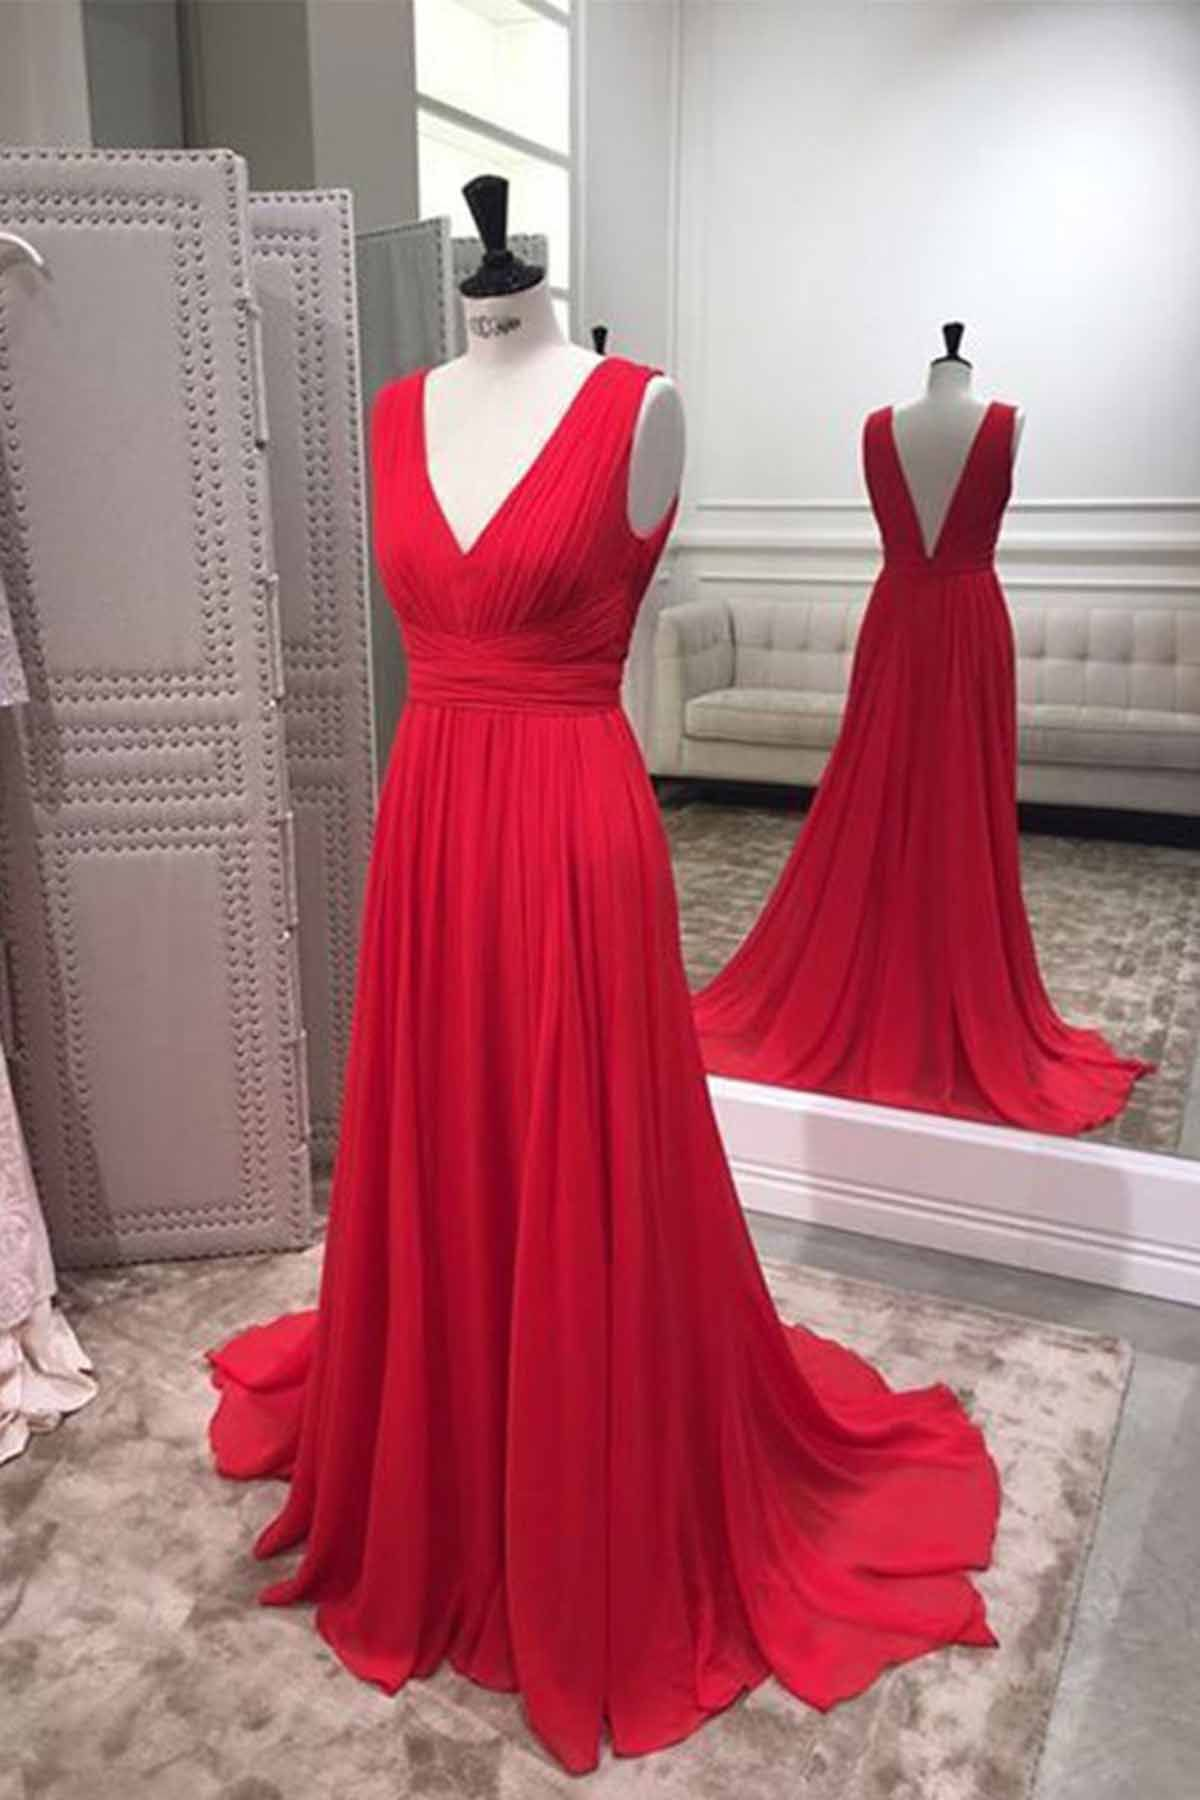 Simple red chiffon v neck long bridesmaid dress red prom dress from